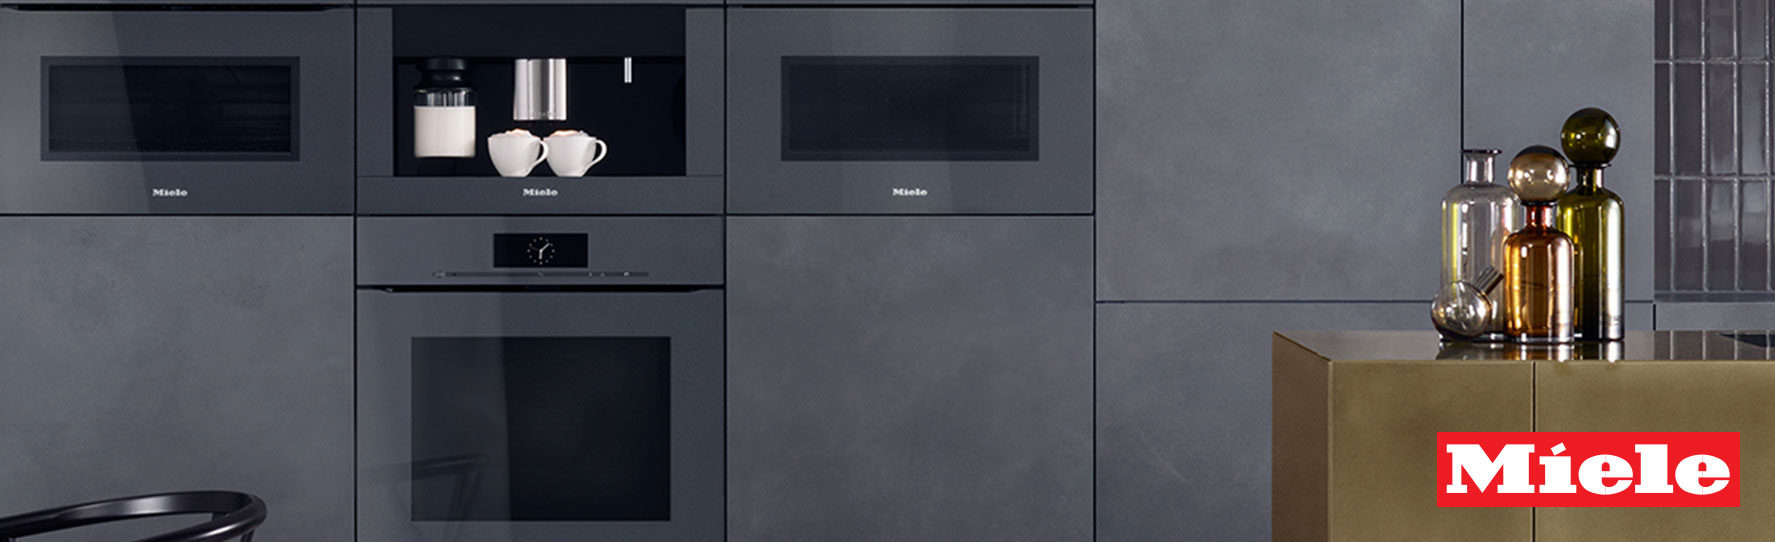 Appliances Portland Or Miele Products At Standard Tv Appliance Authorizedmieleretailer